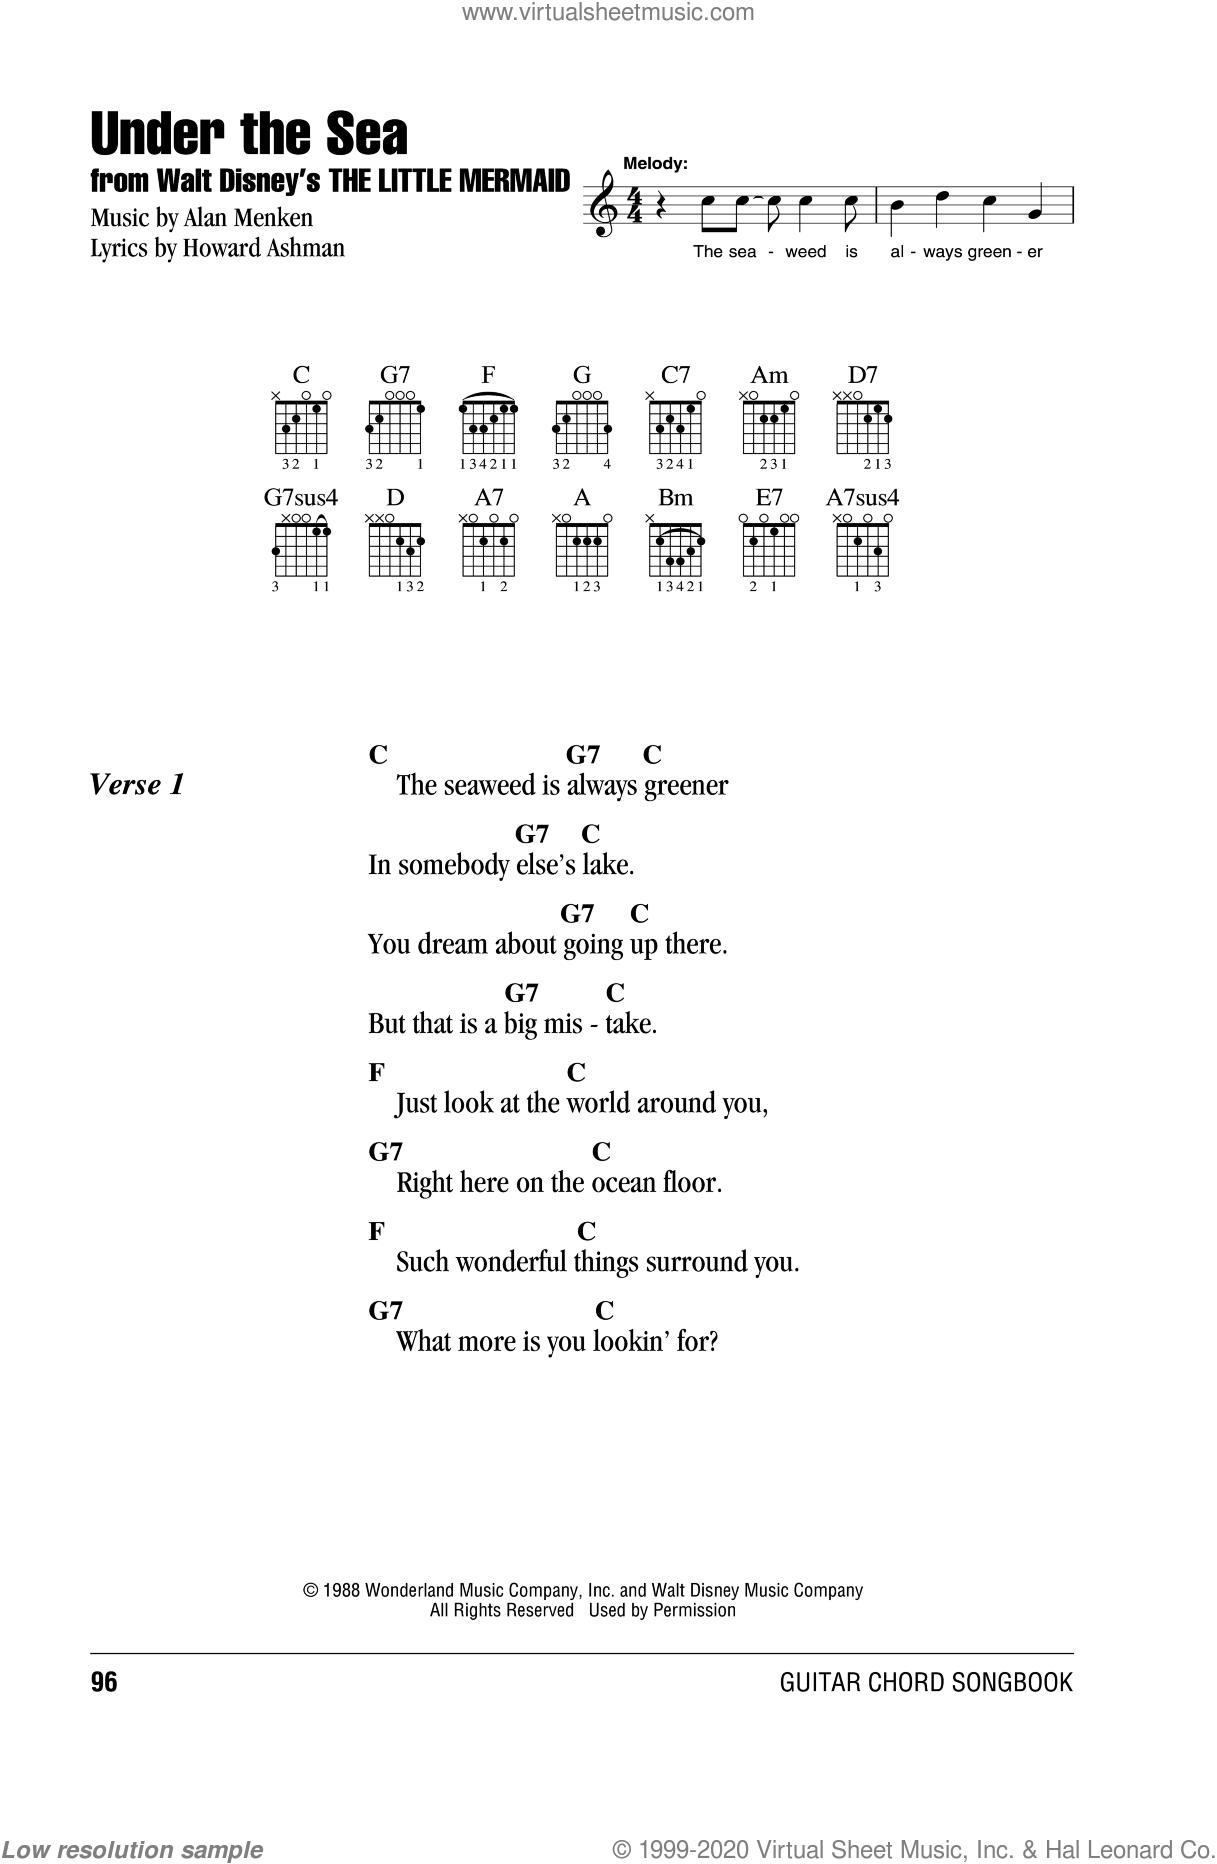 Menken - Under The Sea sheet music for guitar (chords) [PDF]